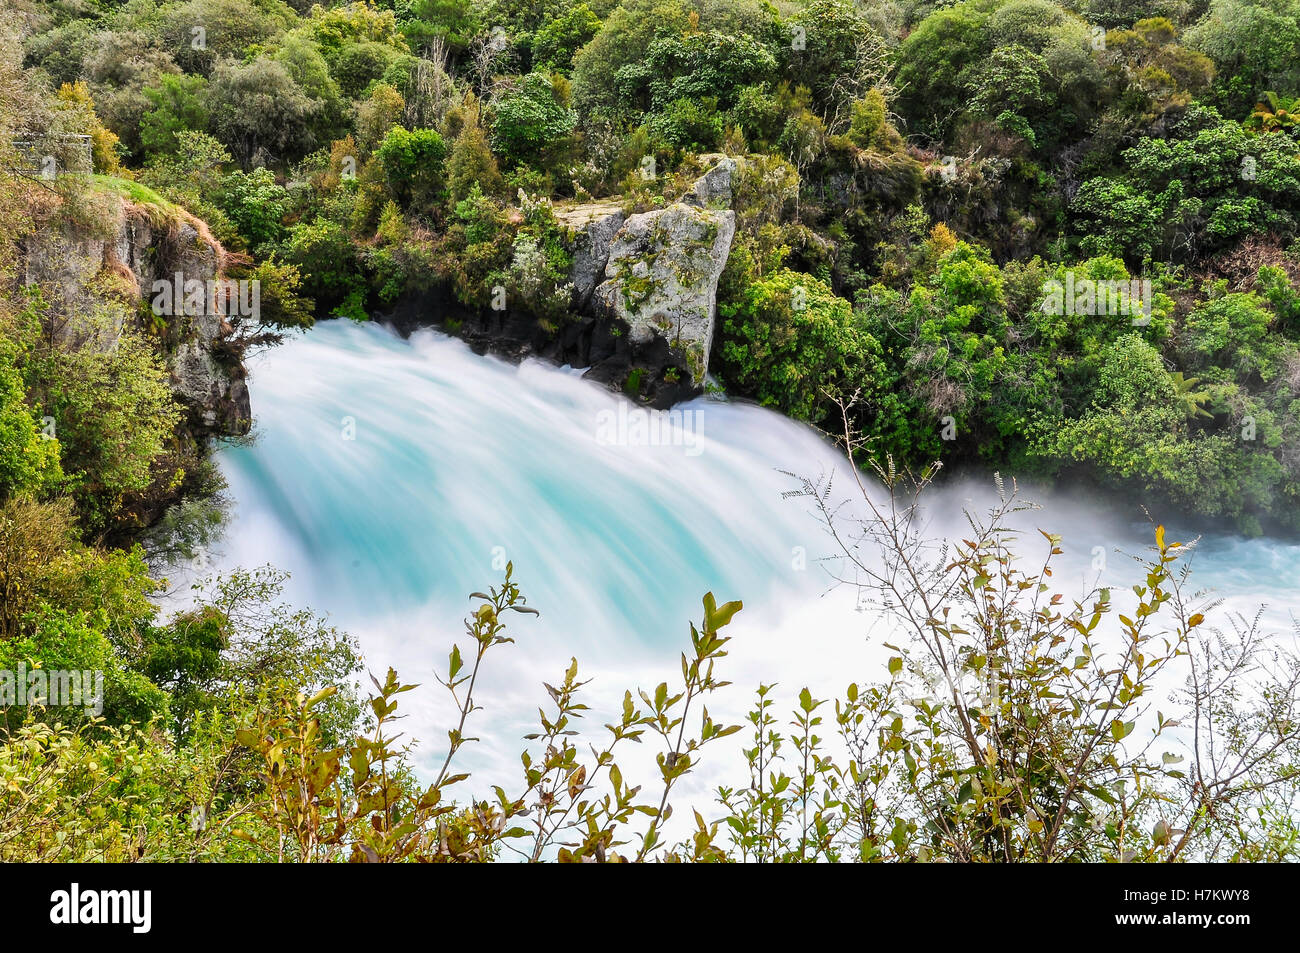 Side view of the rushing wild stream of Huka Falls near Lake Taupo, New Zealand - Stock Image